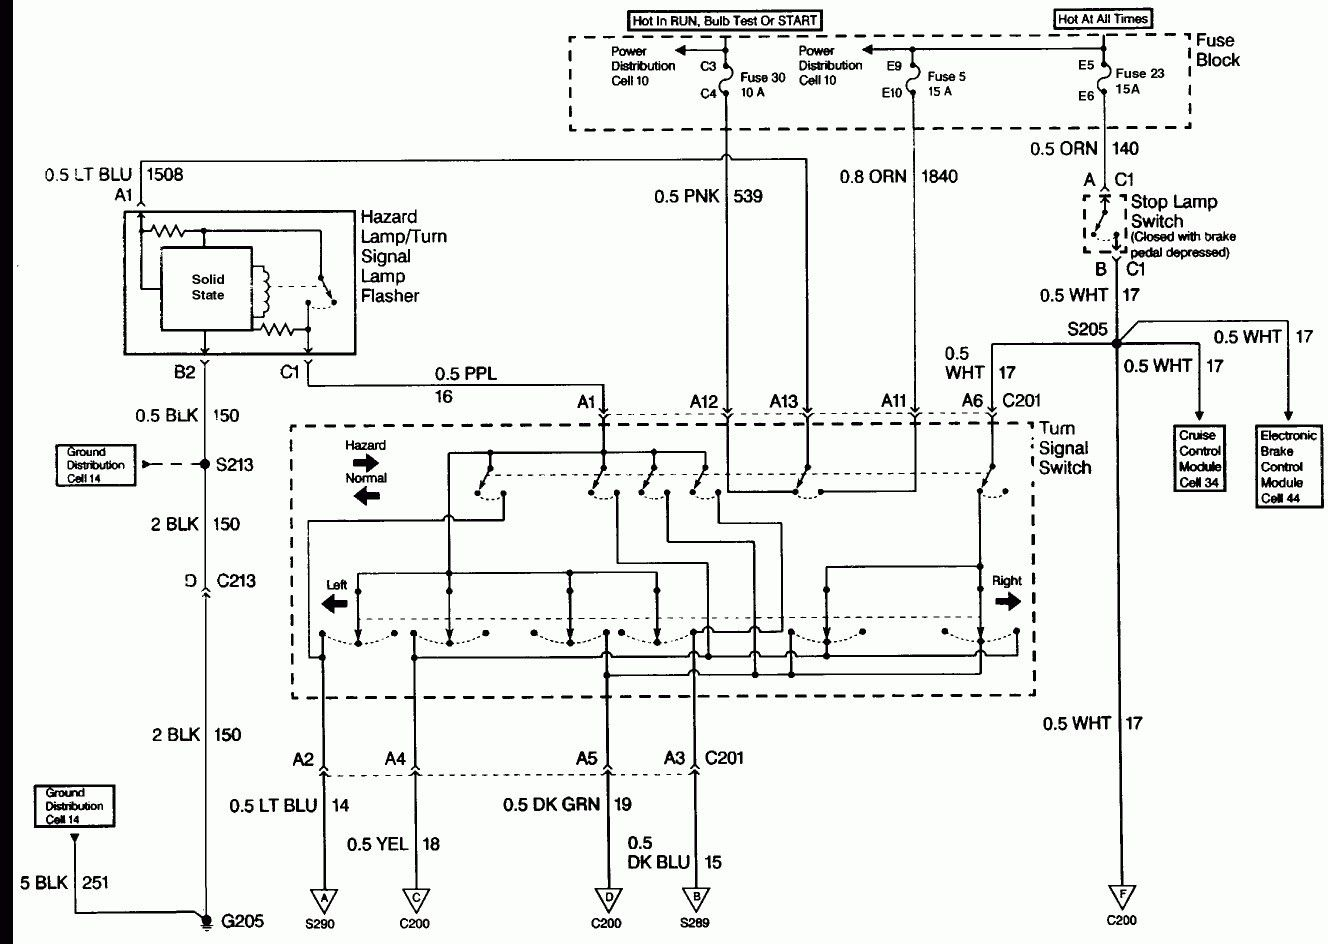 98 Gmc Tail Light Wiring Diagram - Fusebox and Wiring Diagram device-toast  - device-toast.paoloemartina.itdiagram database - paoloemartina.it